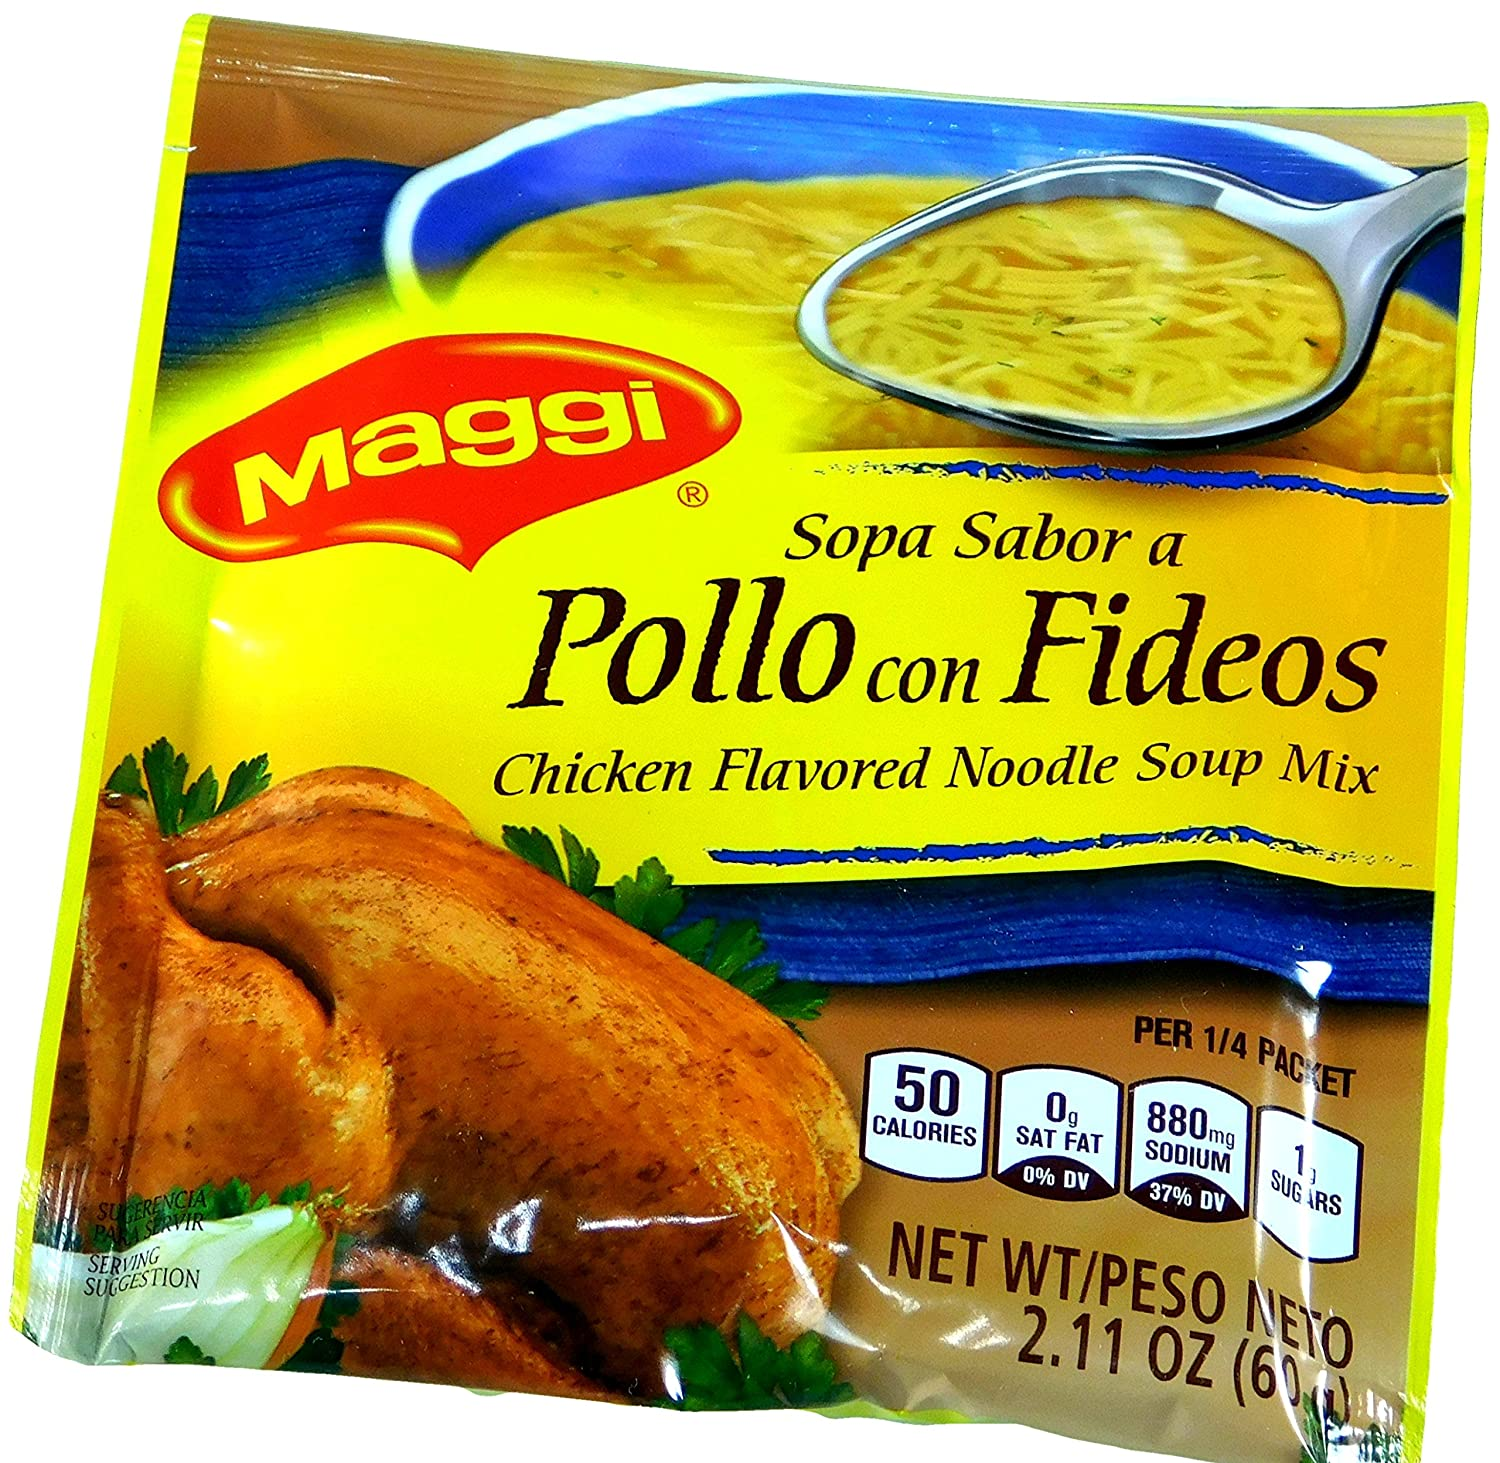 Amazon.com : Maggi Imported Sopa Sabor a Pollo con Fideos Chicken Flavored Noodle Soup 2.11 oz / 60 gr. (Pack of 12) : Grocery & Gourmet Food